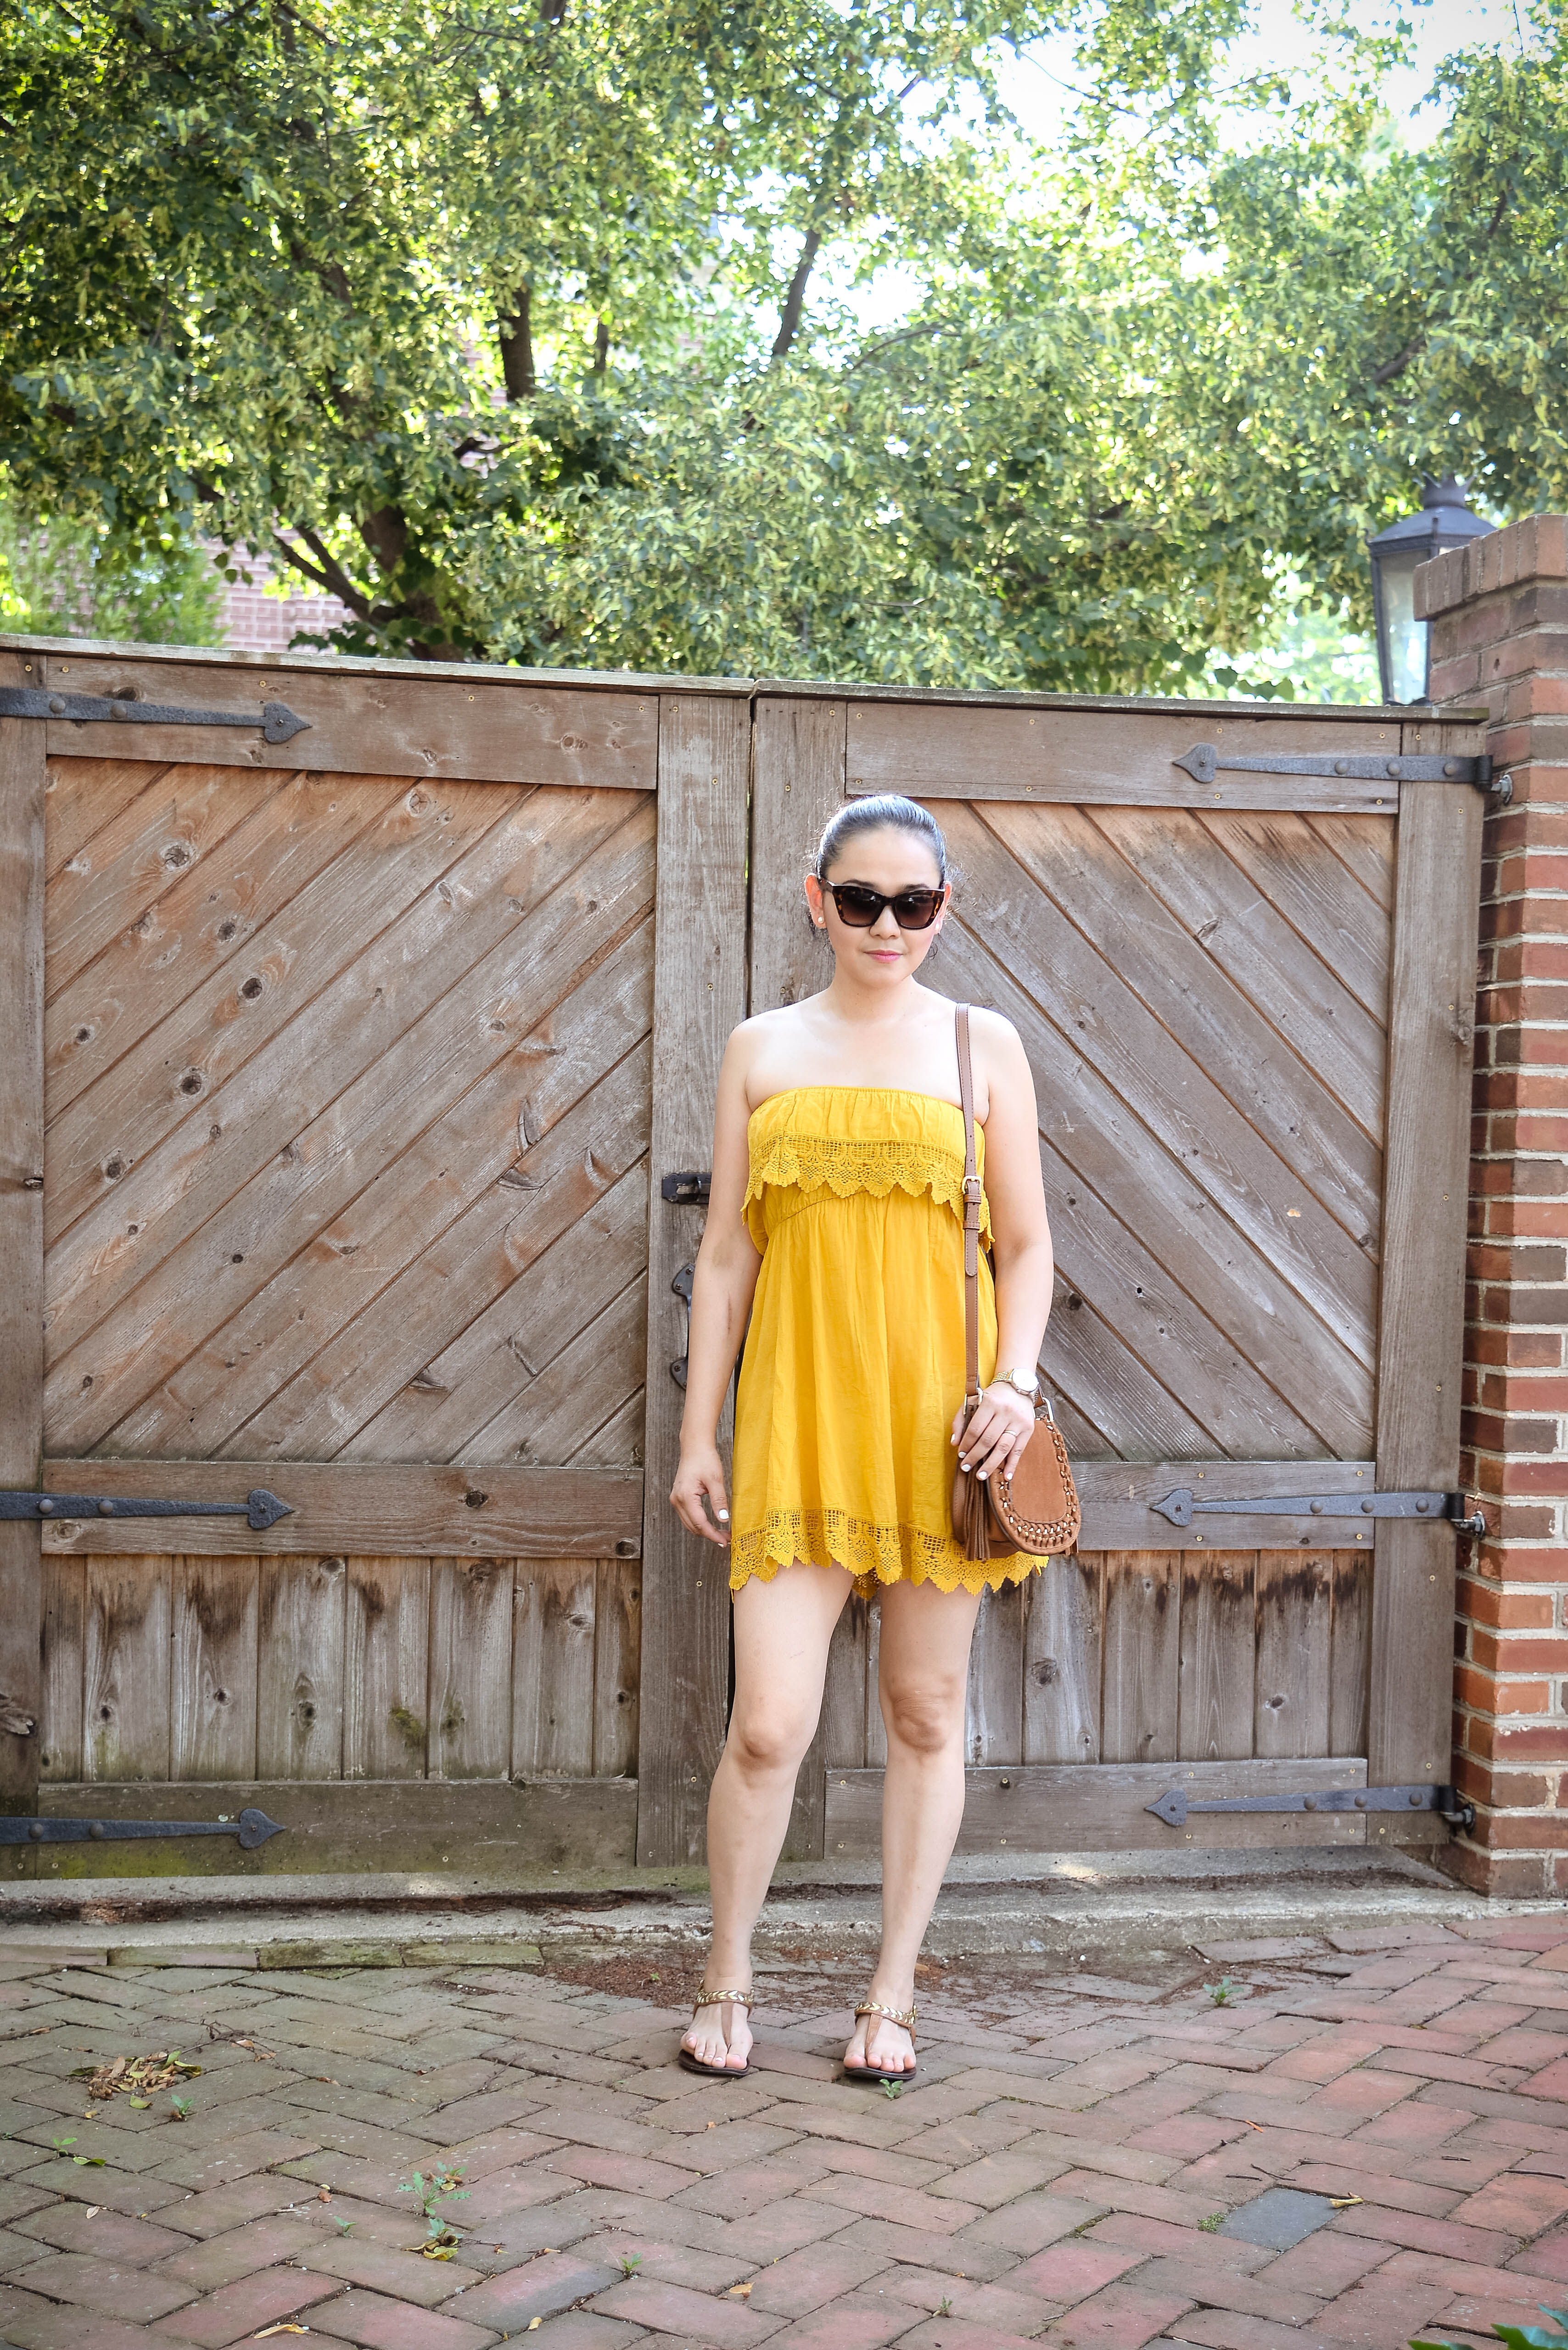 My Mustard Yellow Dress